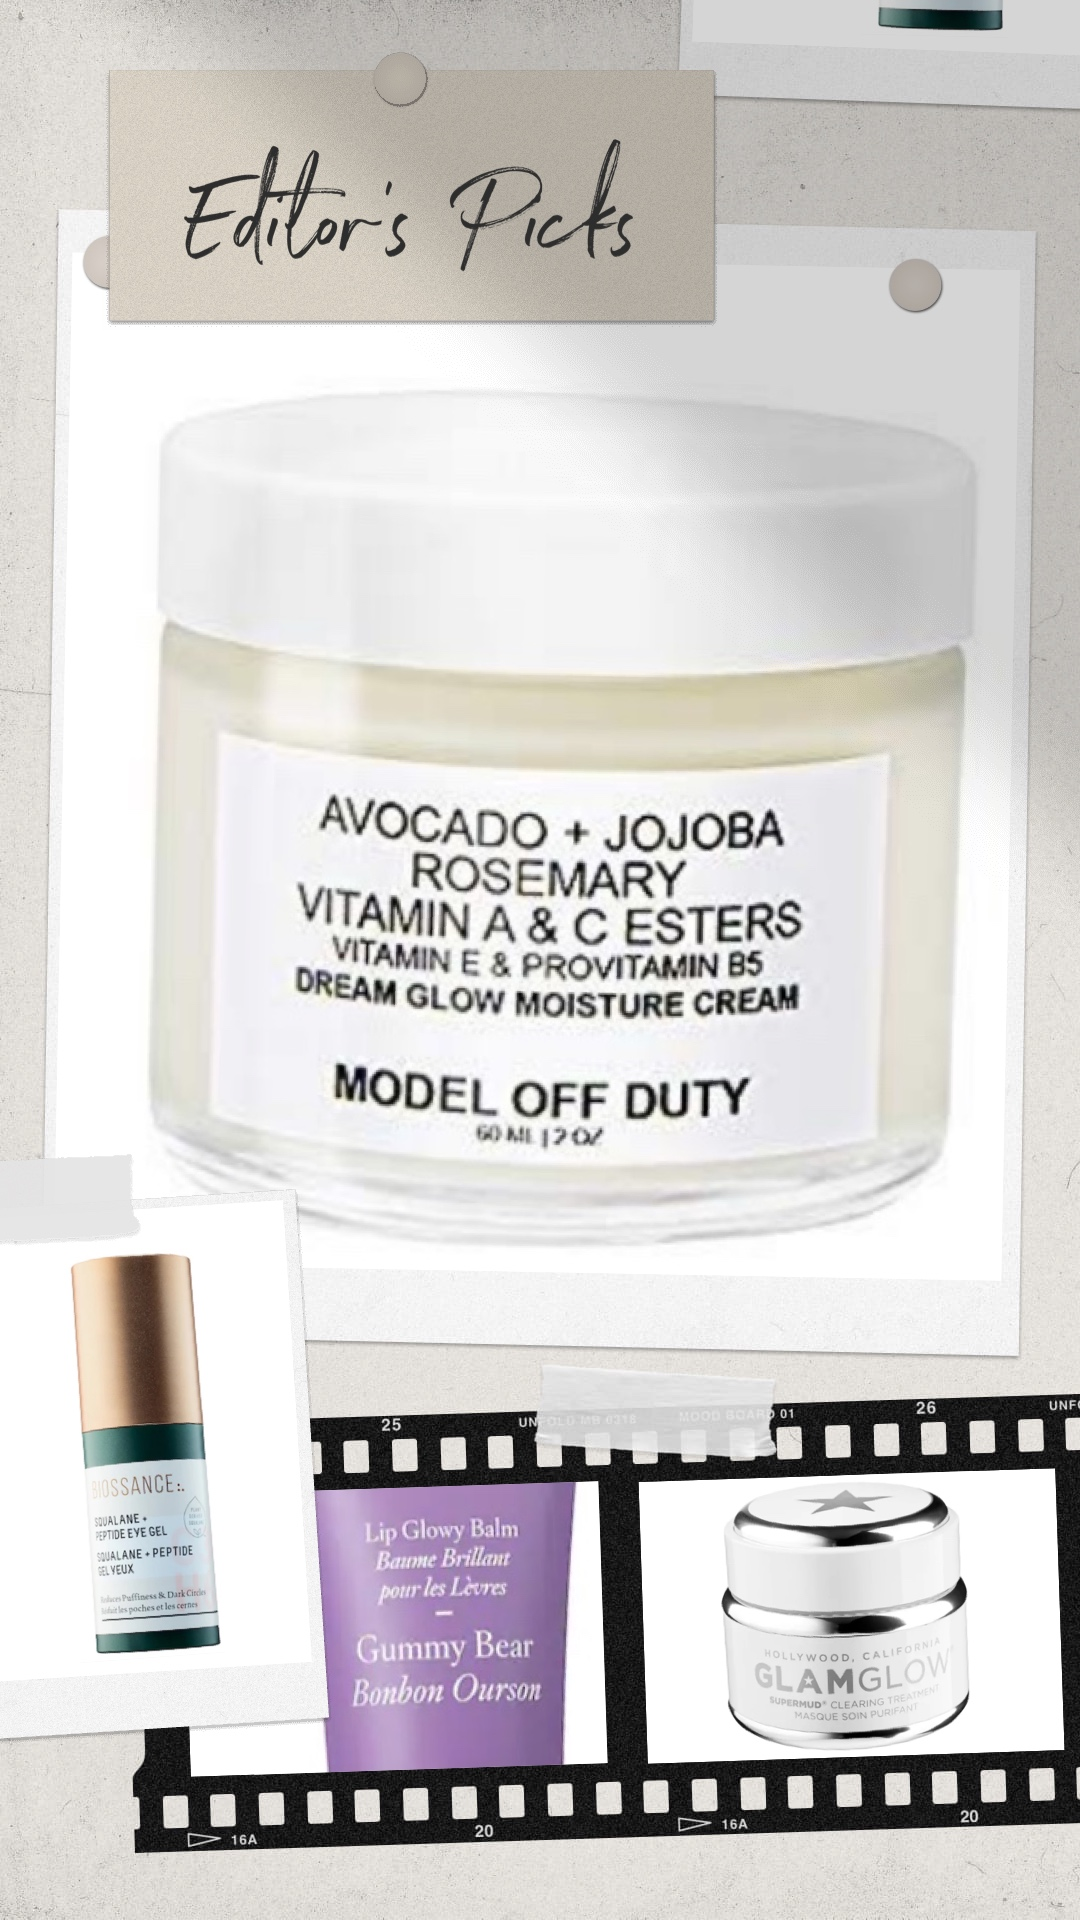 10 Skincare Gems From Sephora & Beyond That Our Editors Love